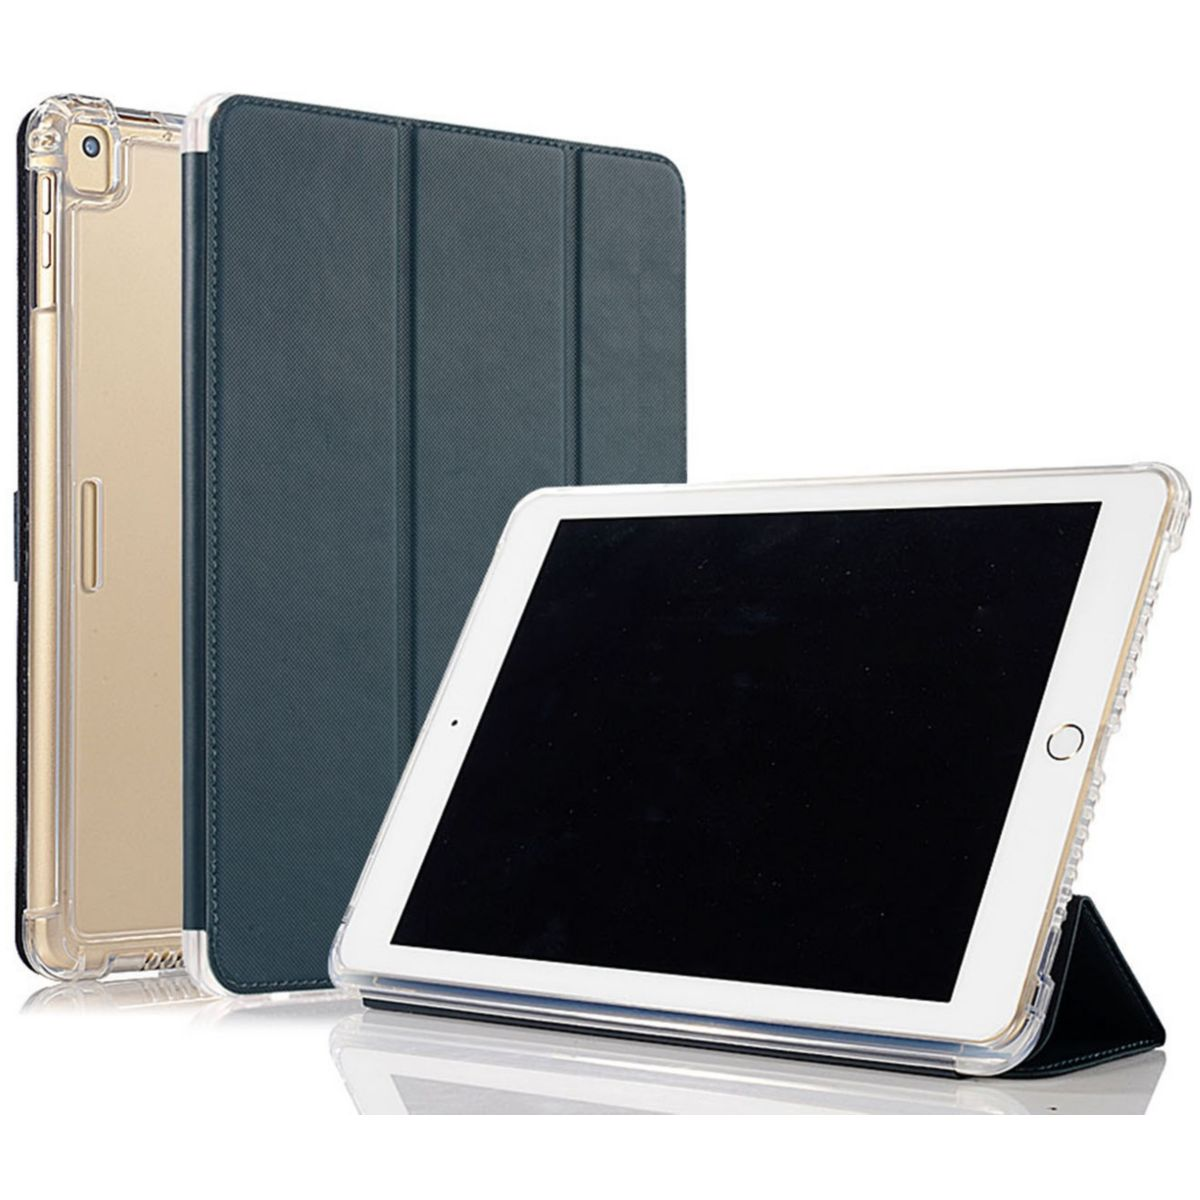 Coque IBROZ Antichoc + Smart Cover iPAD 9.7 Noir (photo)